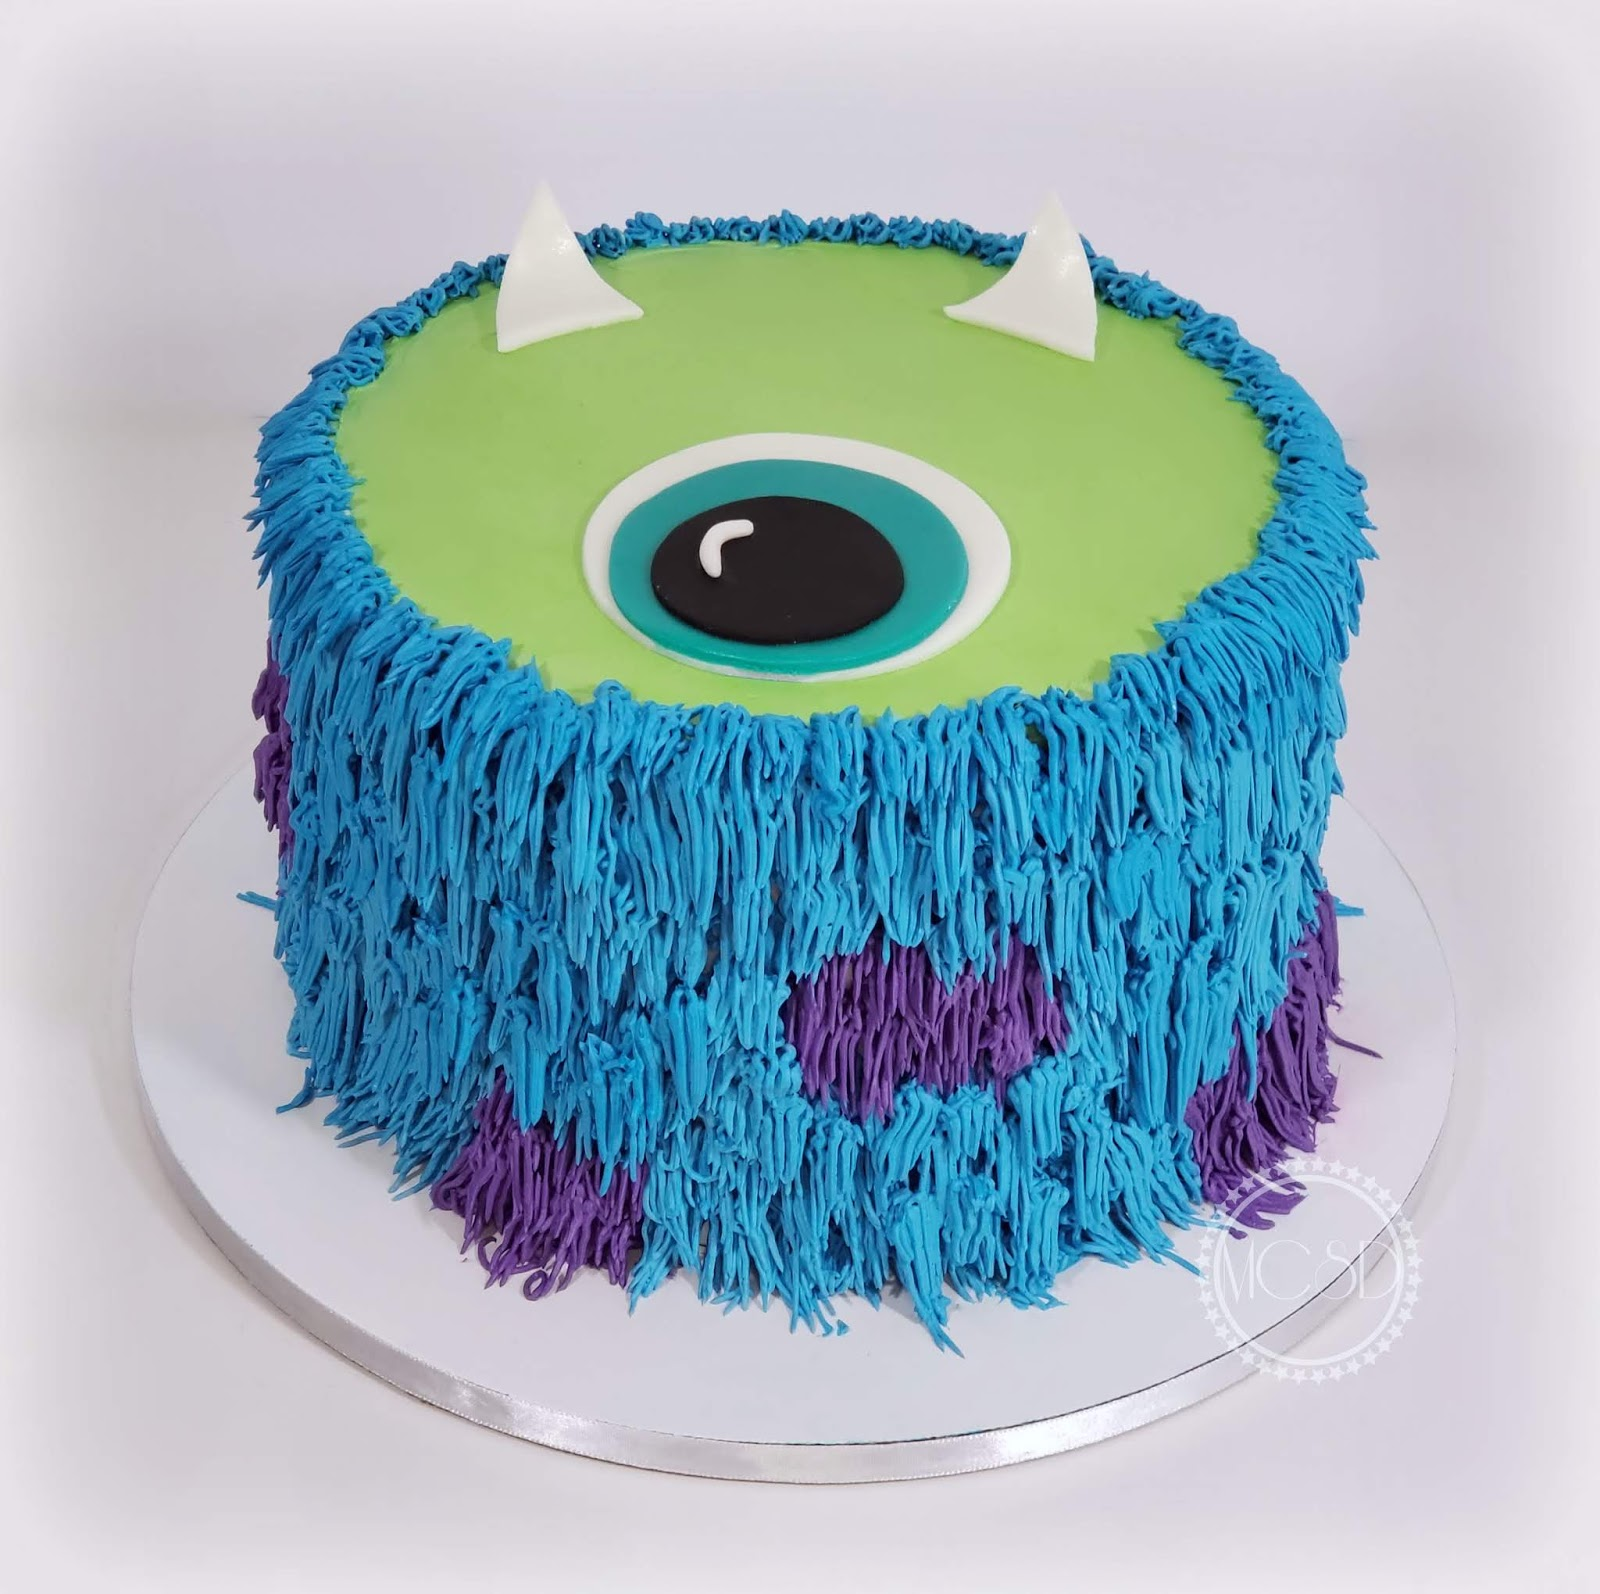 Pleasant Cakesbyzana Monsters Inc Layer Cake Funny Birthday Cards Online Unhofree Goldxyz